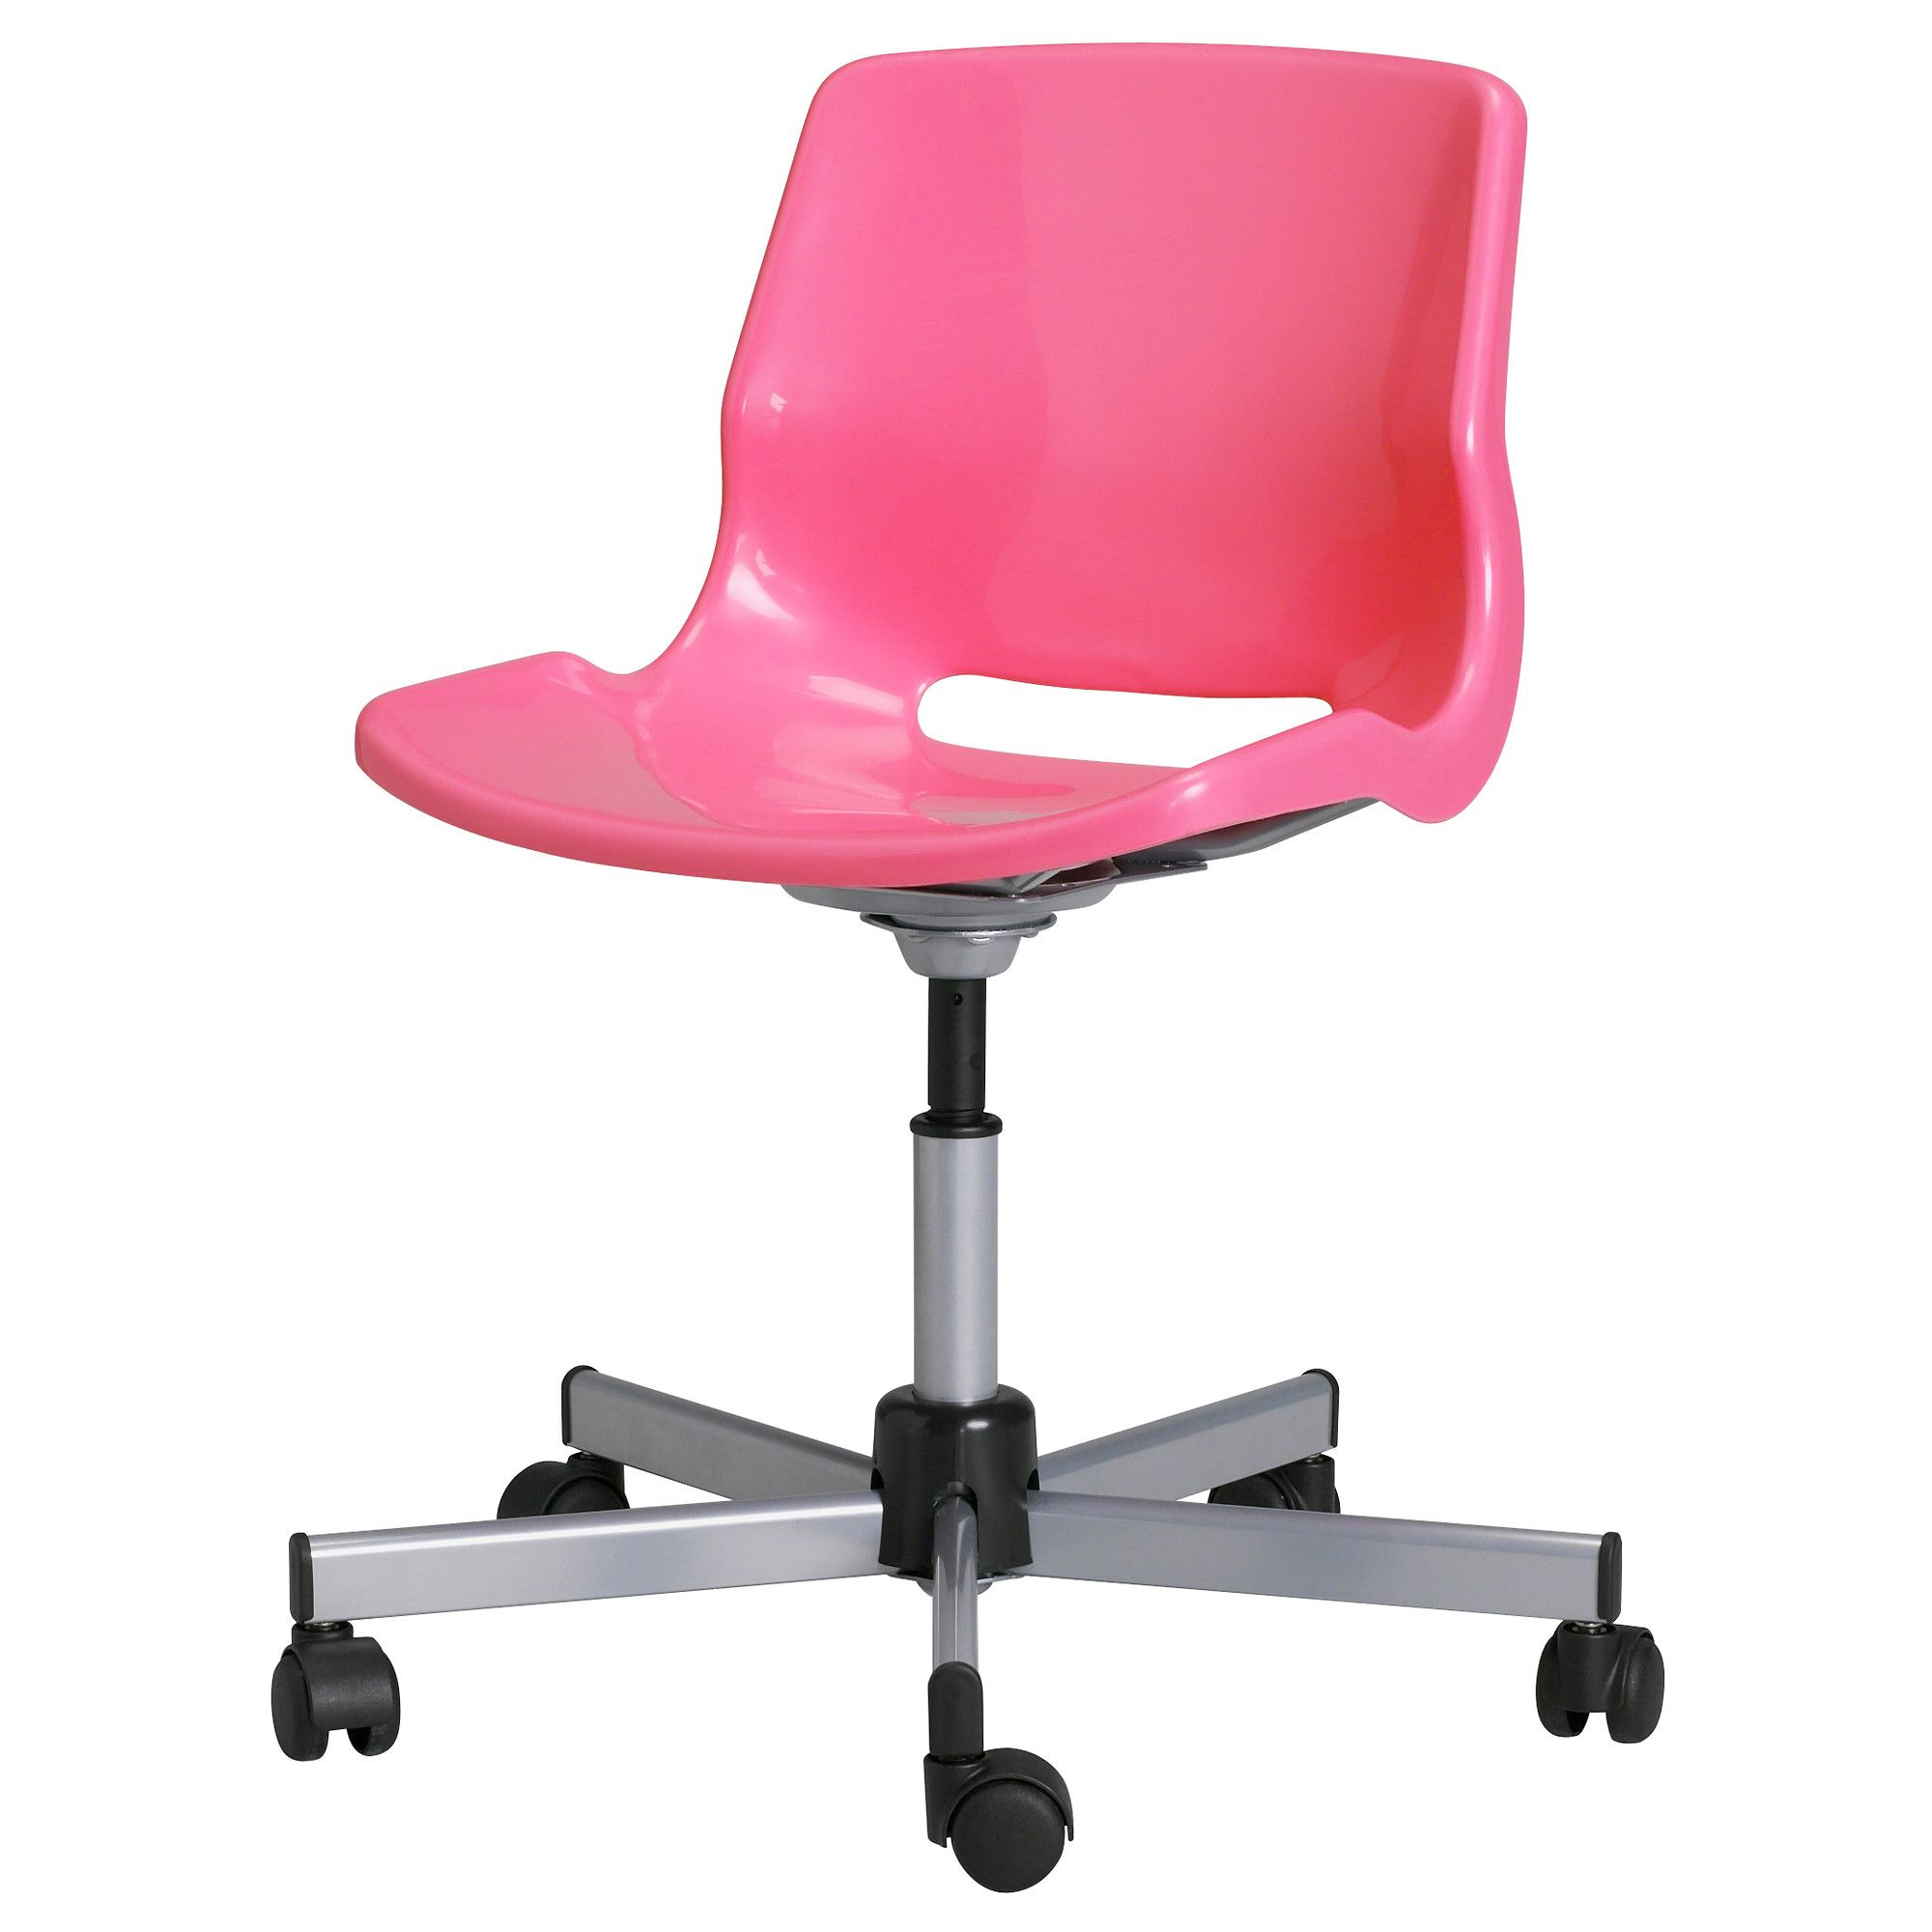 Furniture Home Furnishings Find Your Inspiration Pink Chair College Decor Modern Office Chair